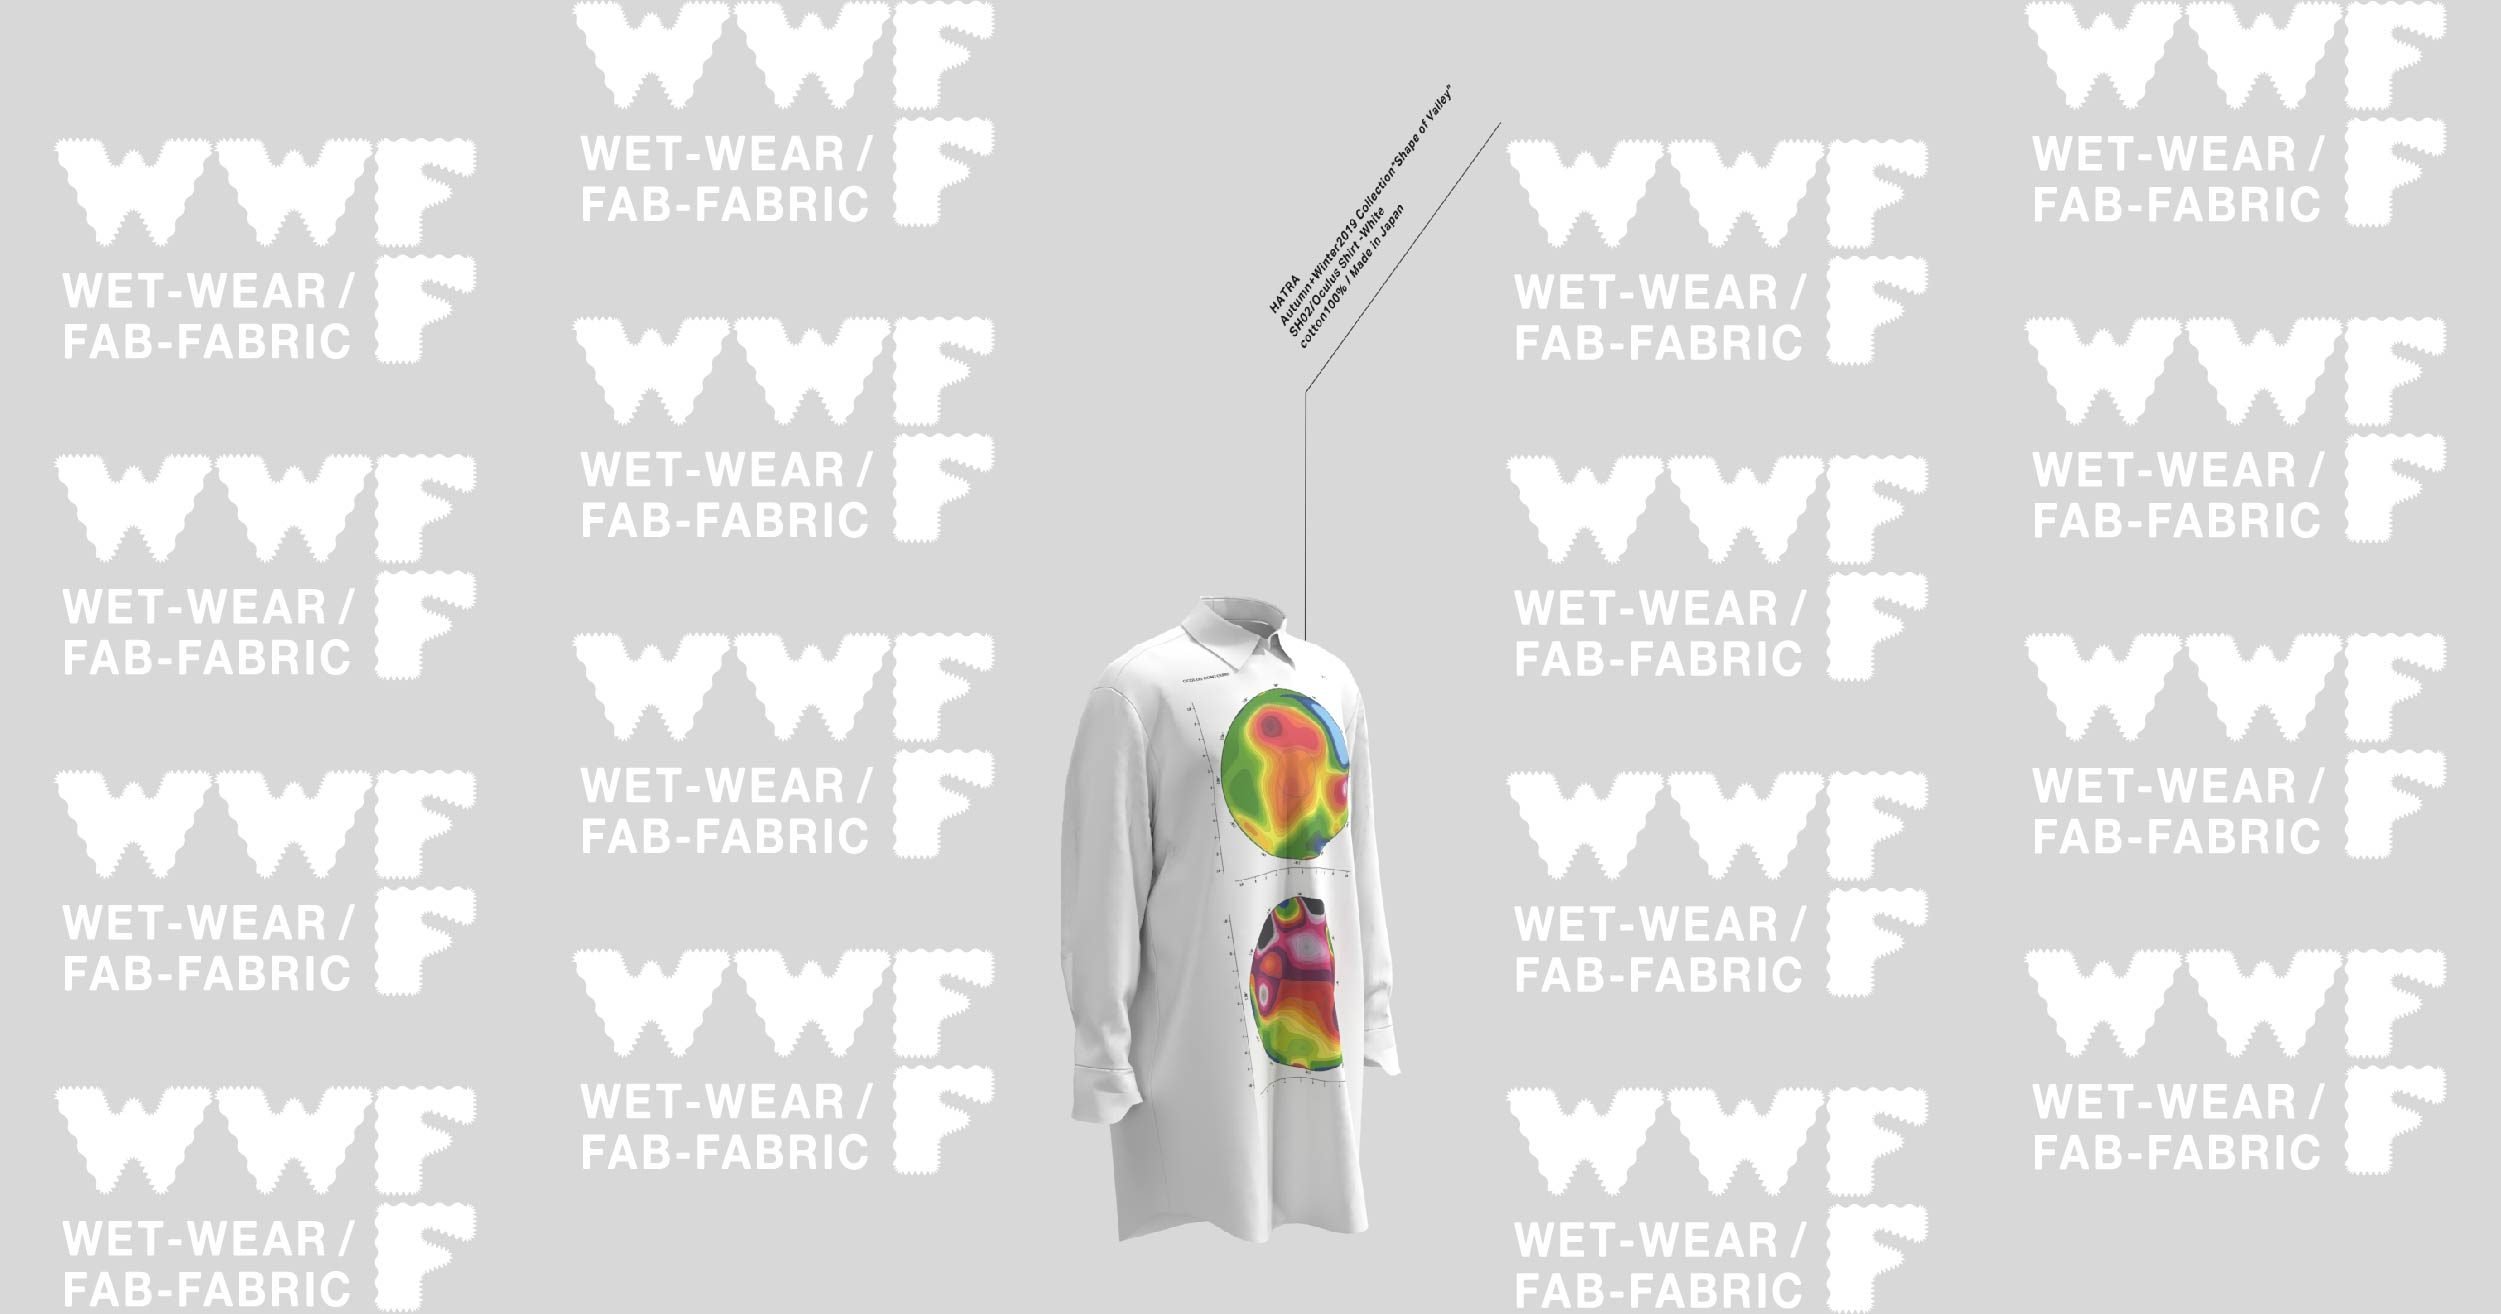 WWFF vol.2 Fashion between 2D and 3D, the shifting reality after CAD and Instagram